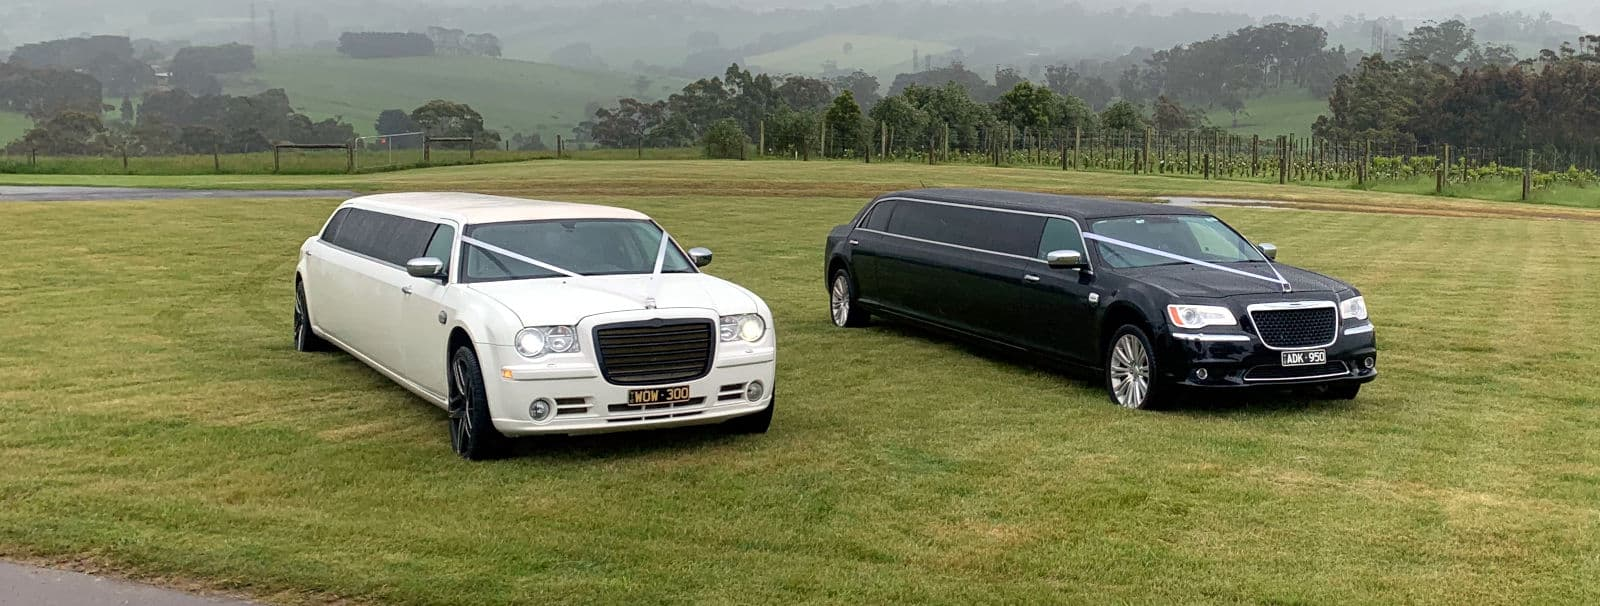 Dual-stretch-wedding-limousines